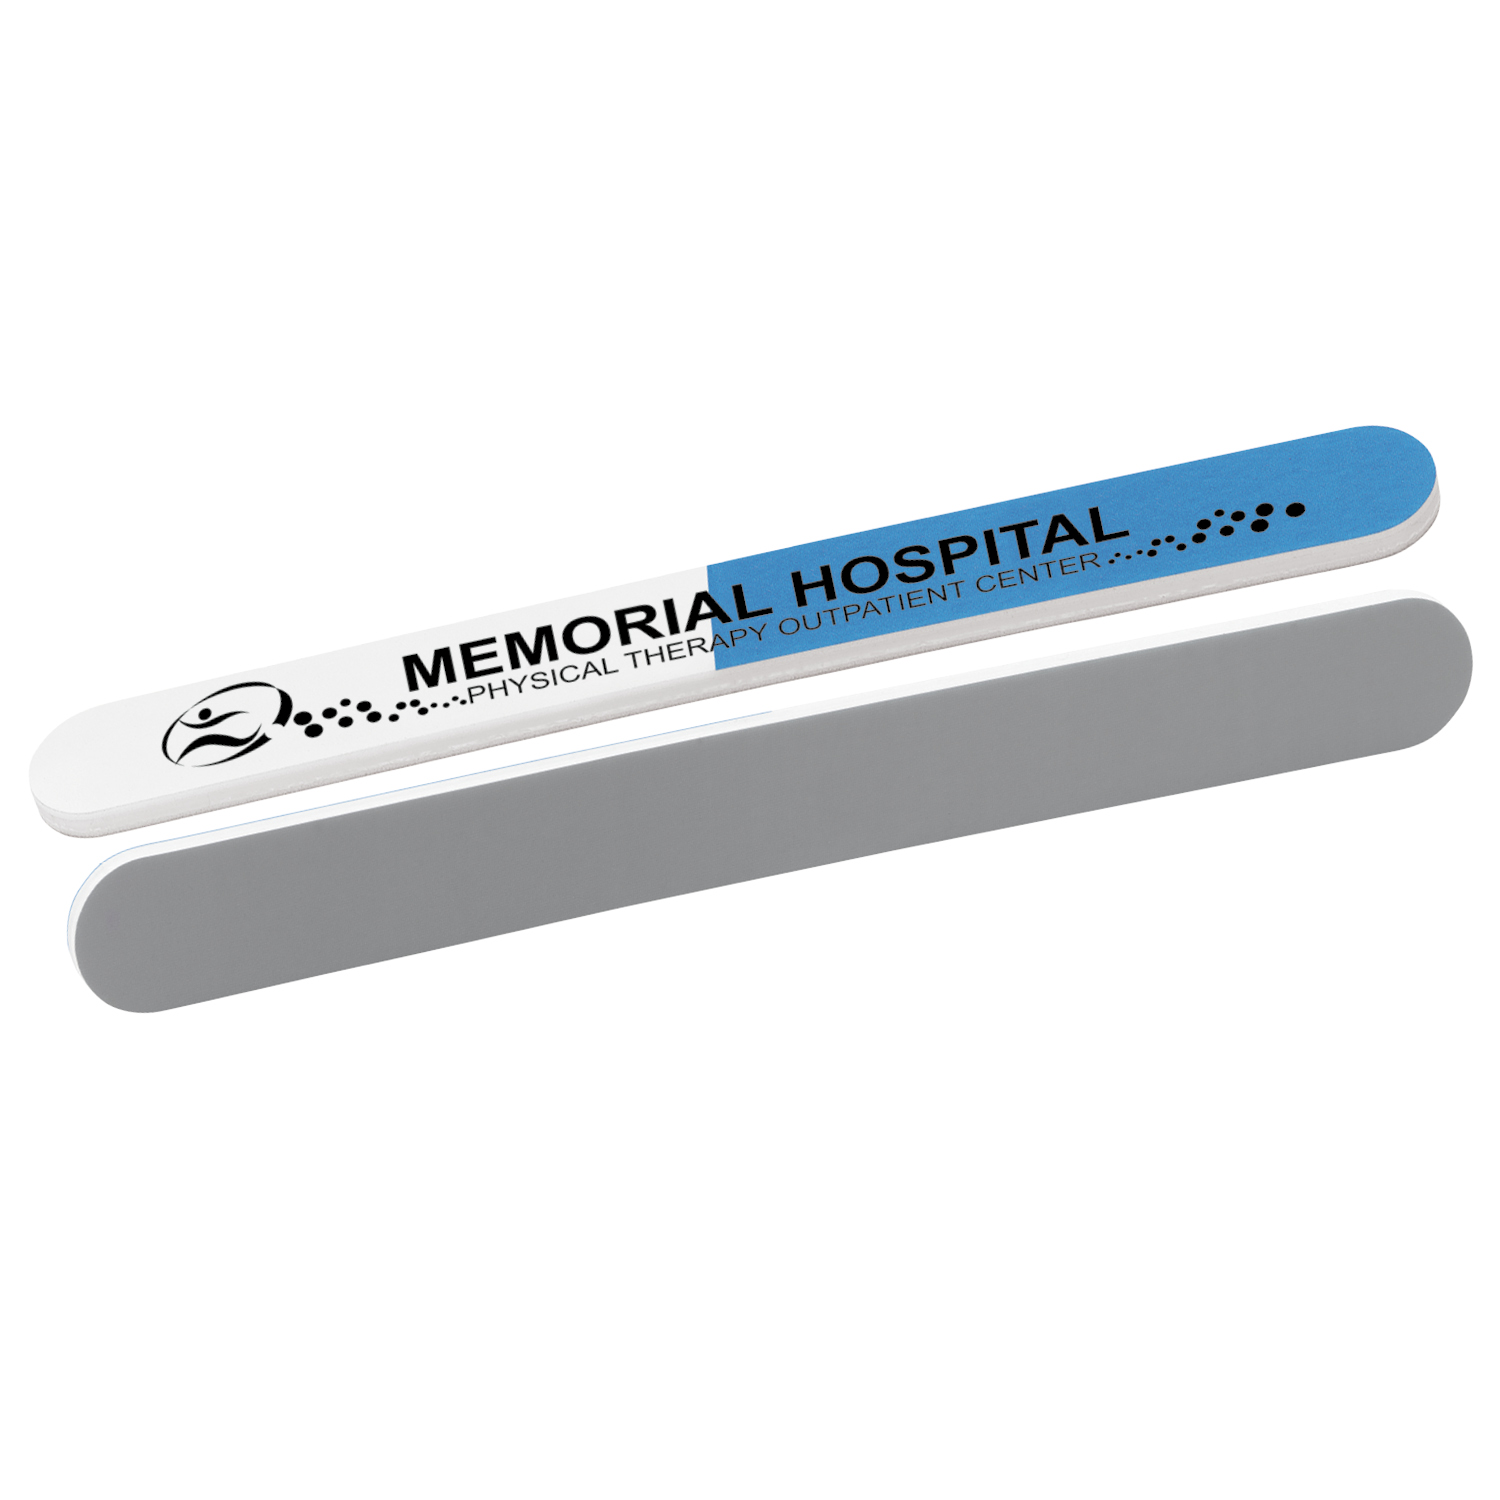 3 Way Emery Board - 1 Colour Imprint, #40419